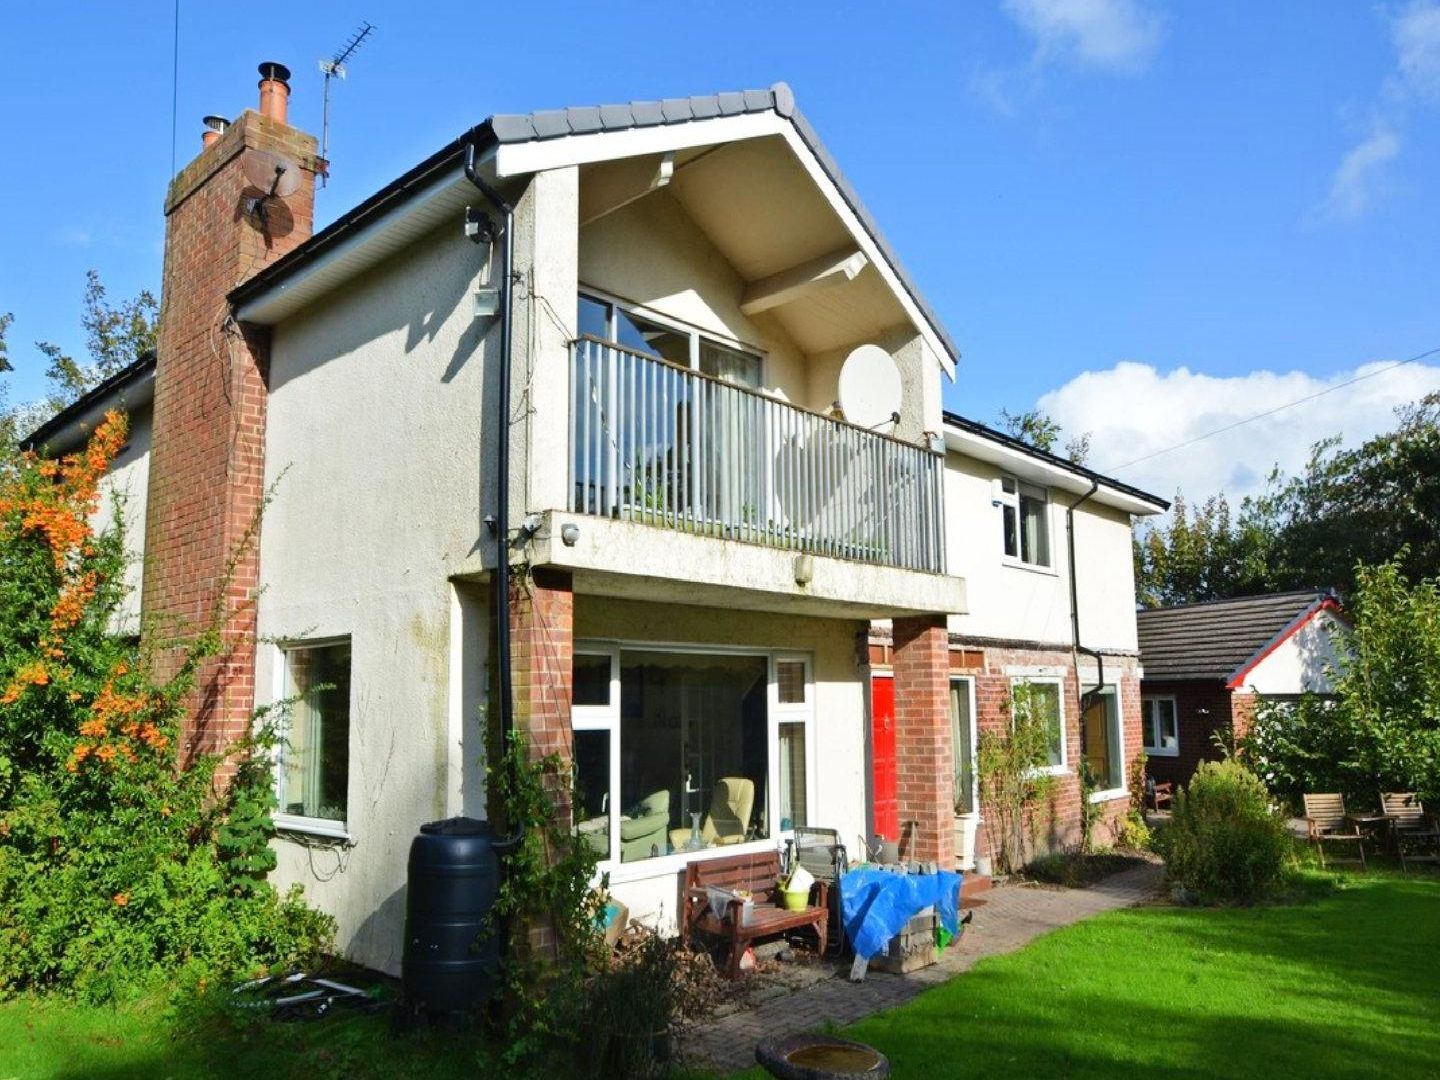 This detached four bedroom detached home set in its own grounds in Thornton is up for sale for 350,000